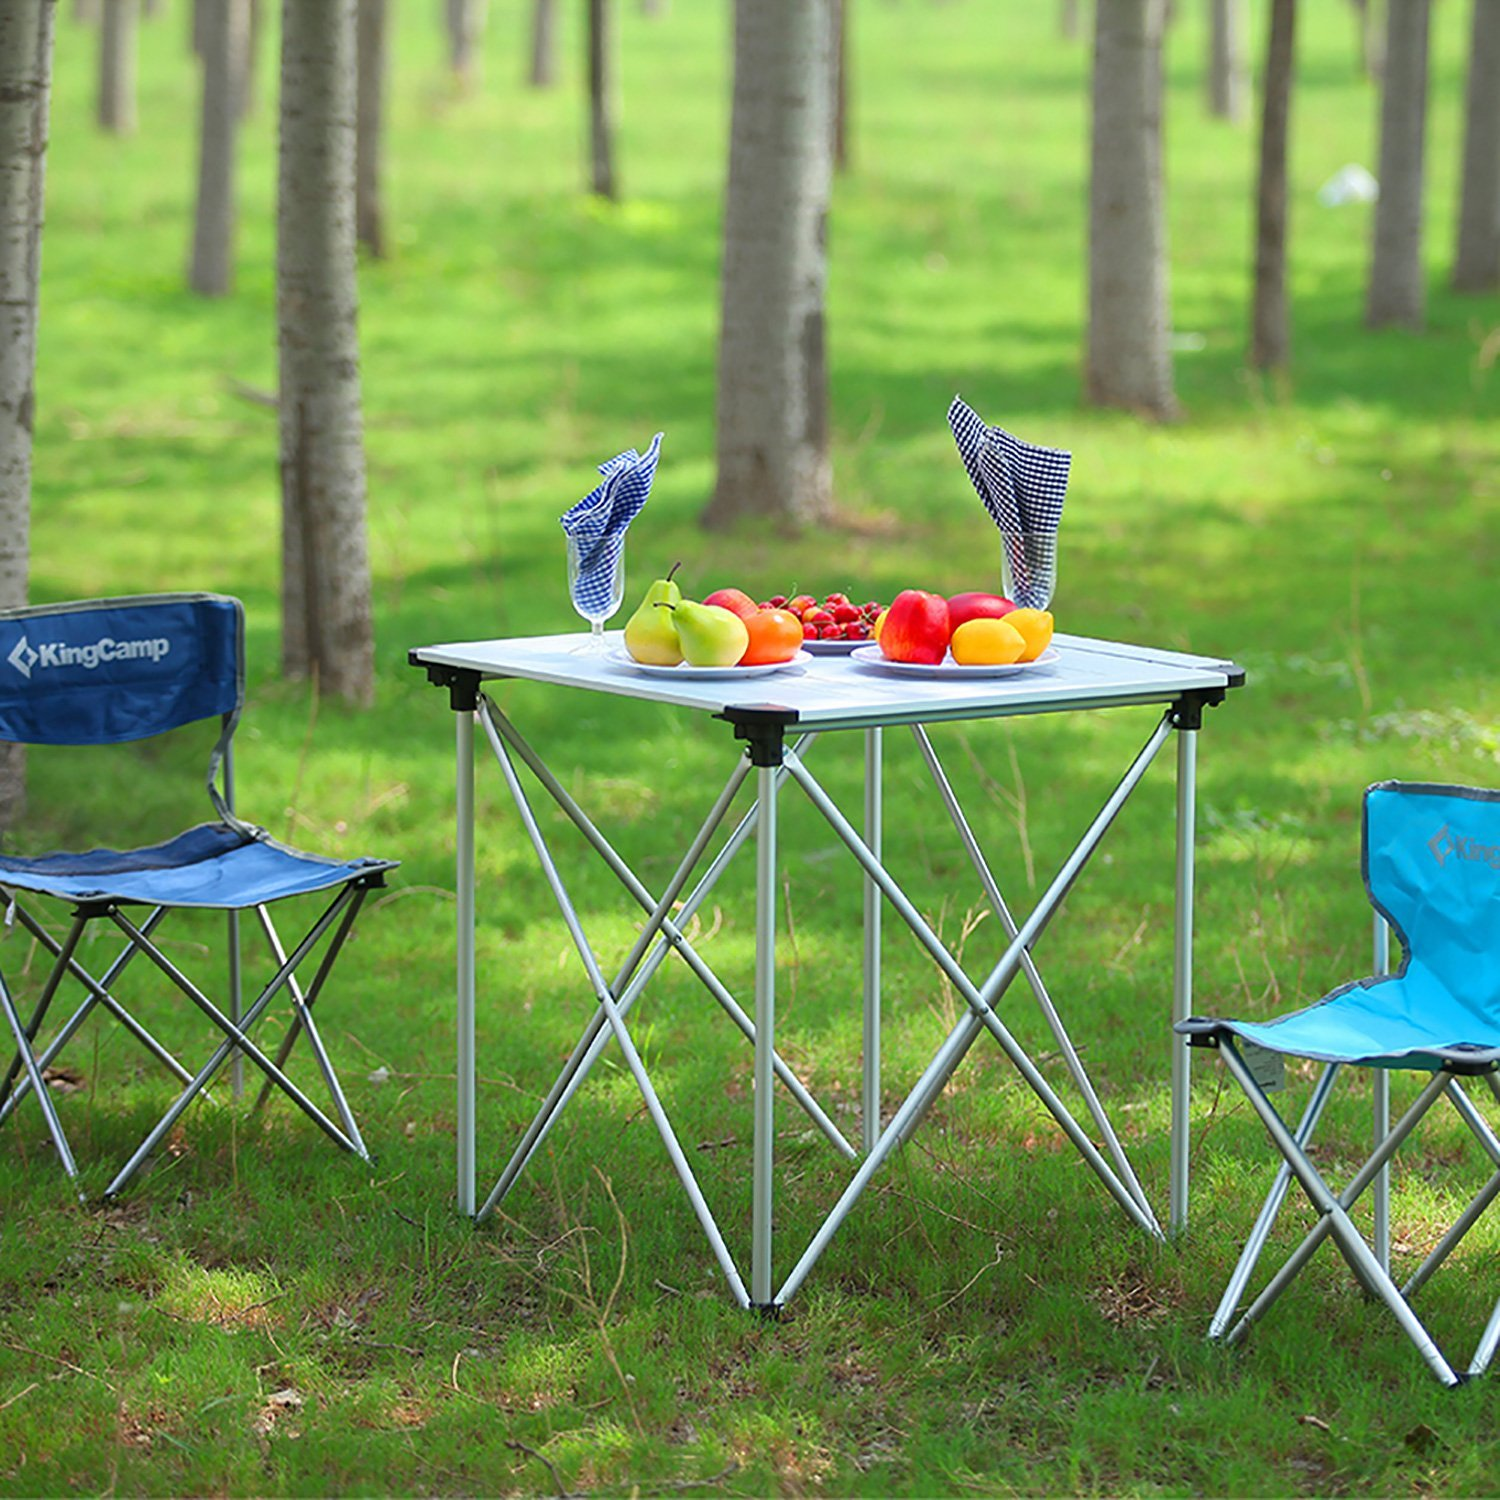 70 /× 70 /× 69 cm KingCamp Folding Aluminium Table Roll-Top Lightweight Portable Stable Compact and Easy Transport for Camping Outdoor Picnic Vacation